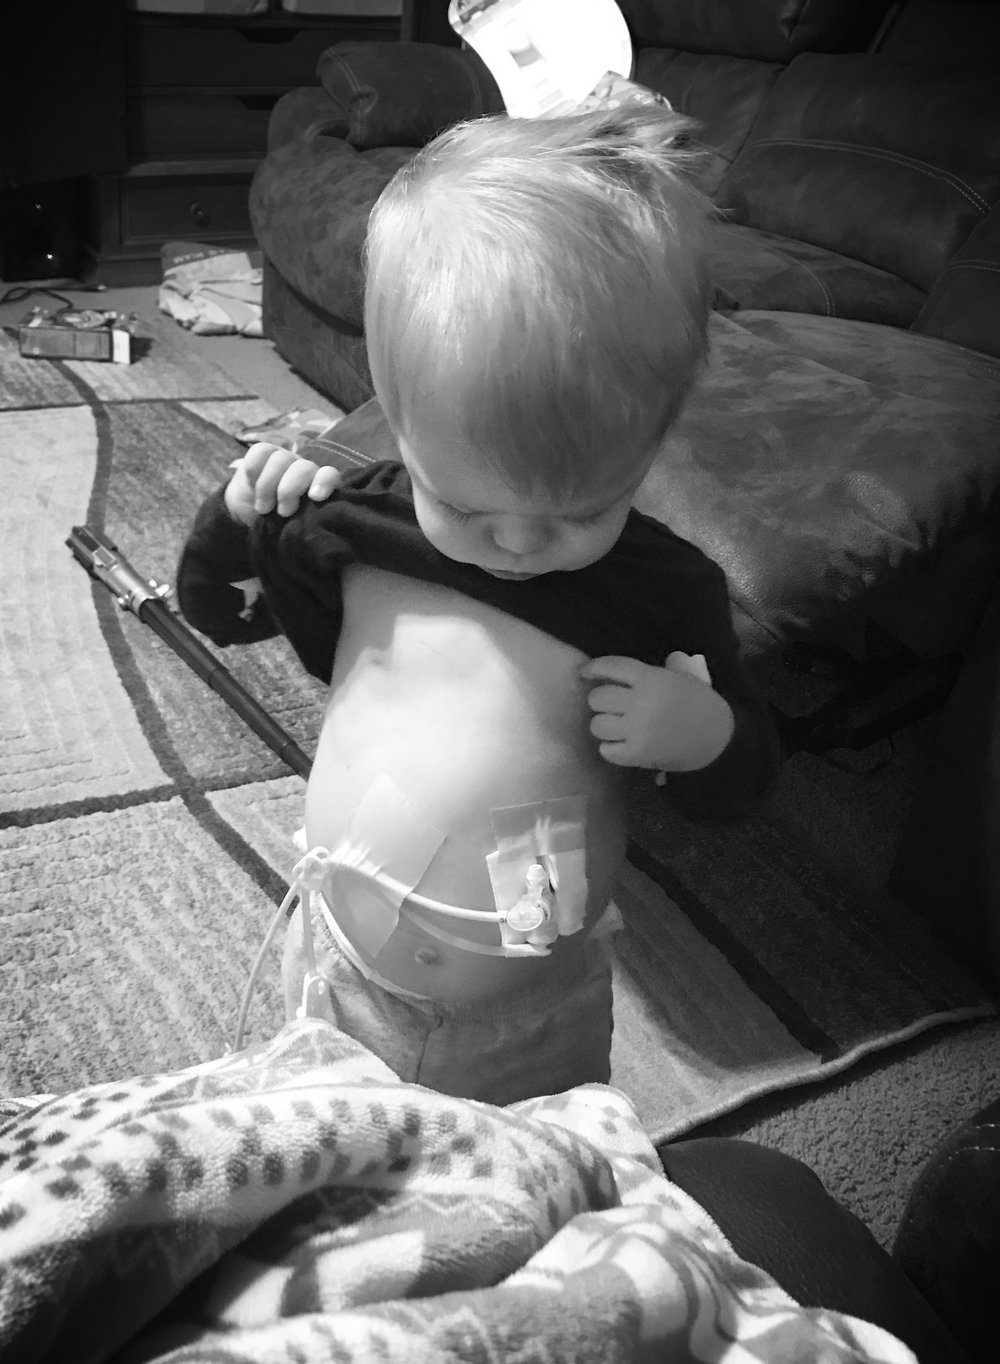 Tube feeding is Hard! 24 Hour feeds, no breaks, hooked to a backback or a pole. Telling your child they can't share your food sucks. The day to day struggles get easier and become a routine and they aren't quite as hard. It gets better. - Jennifer Porter